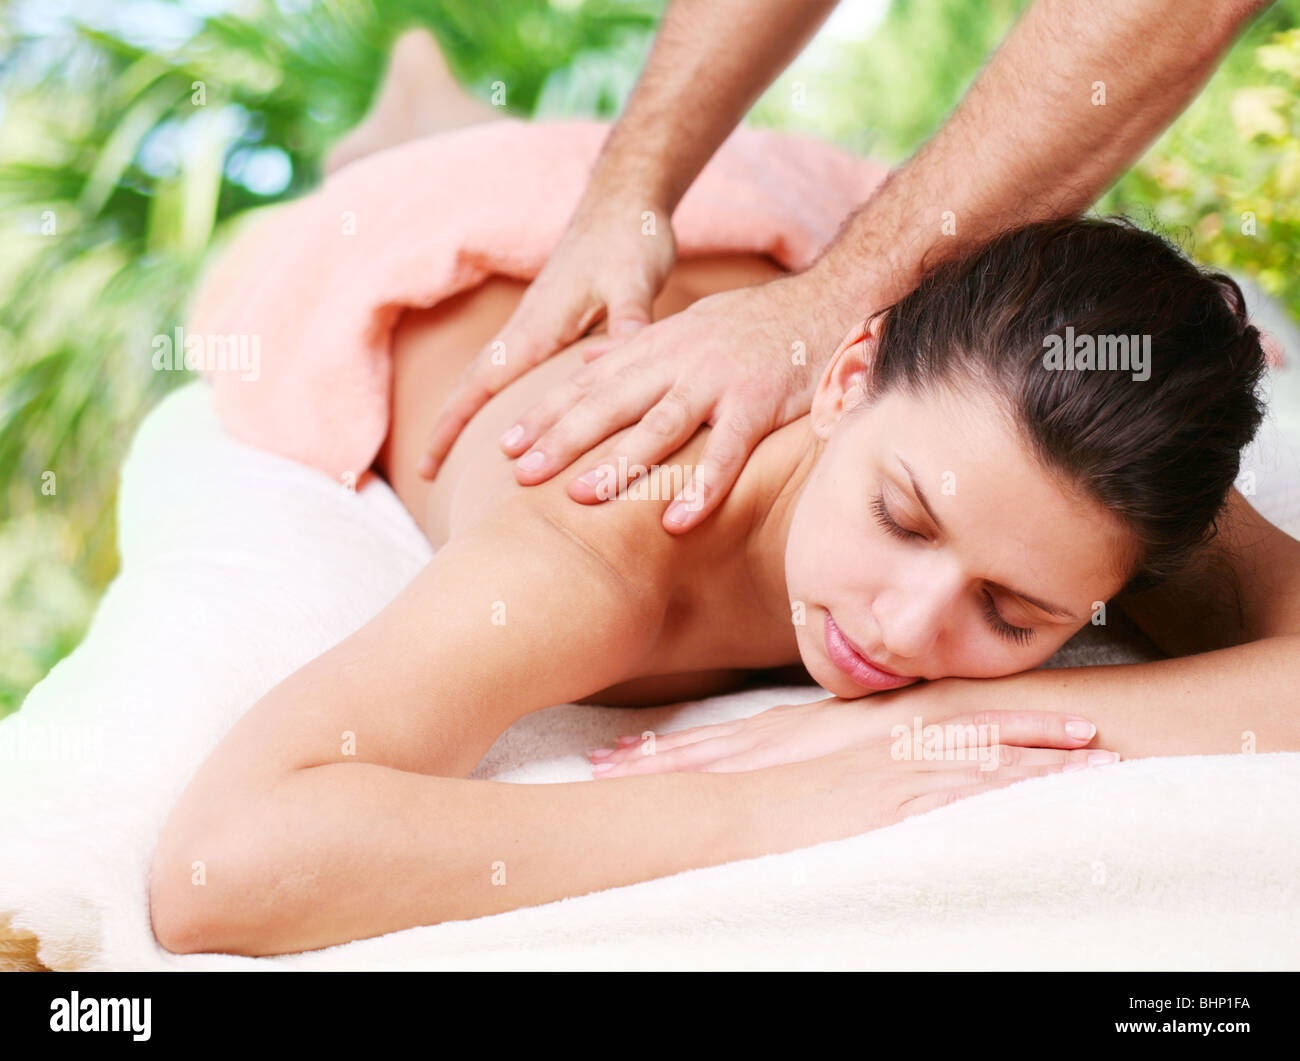 Young woman gets a massage. Eyes are closed. - Stock Image